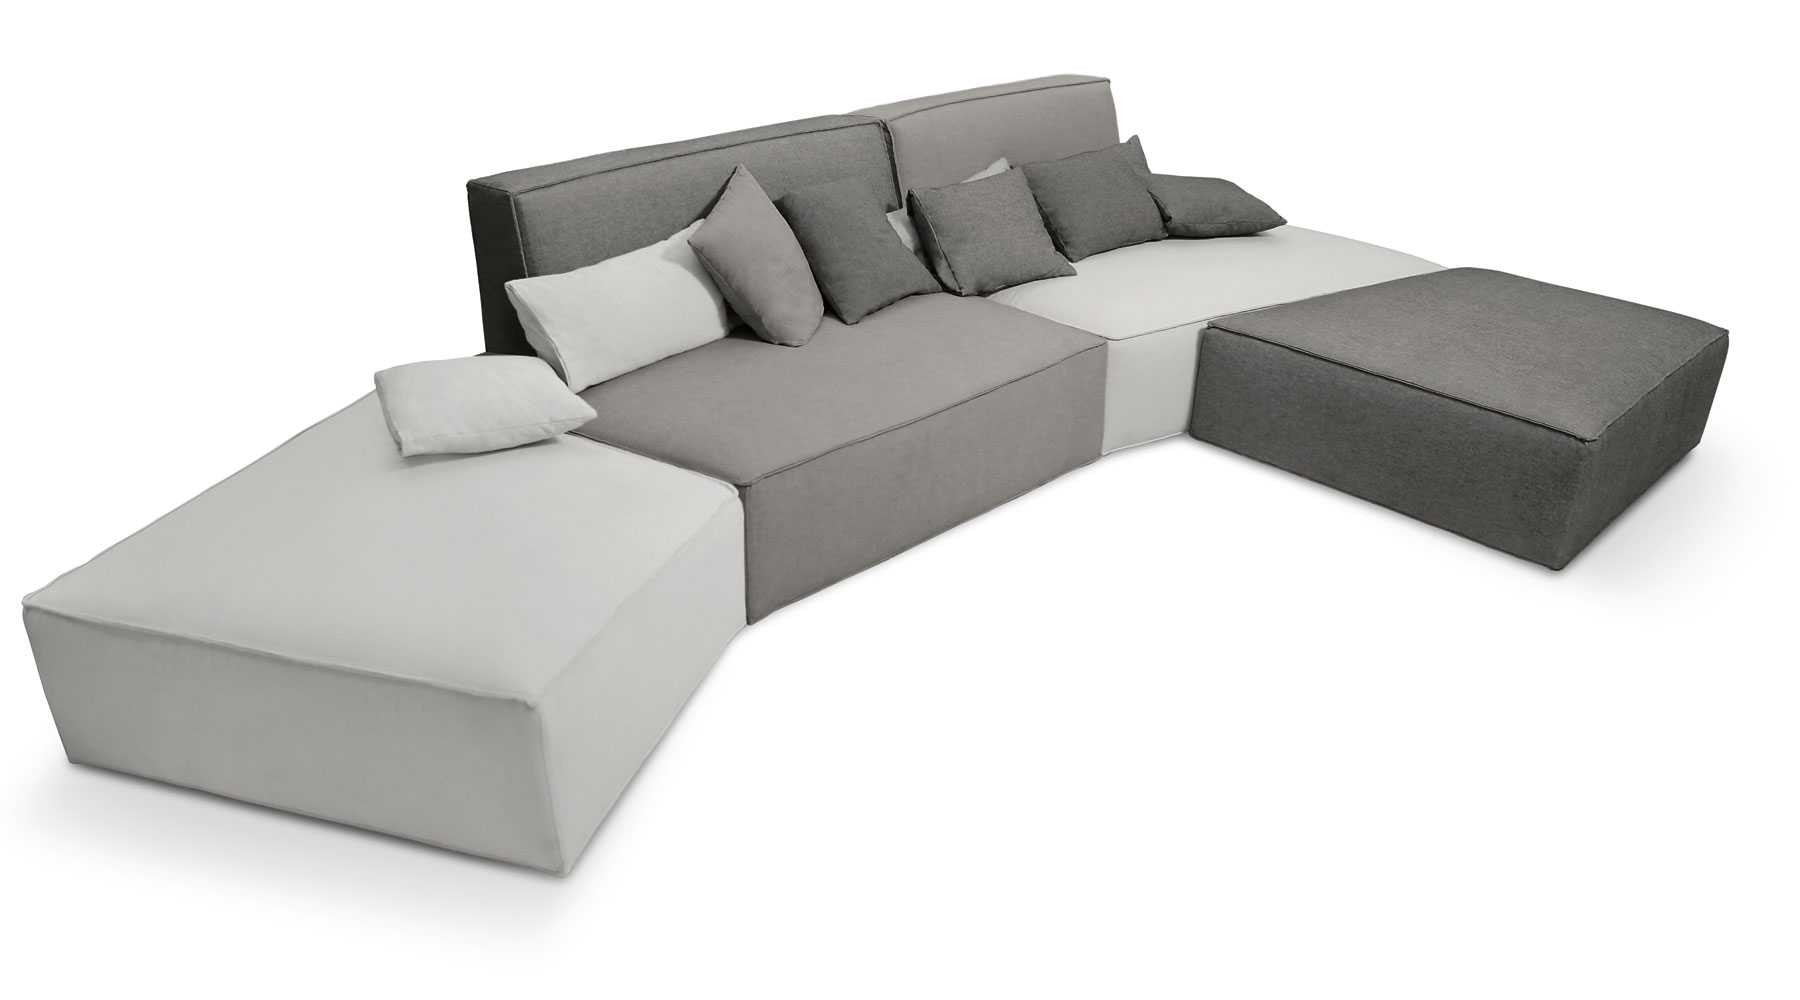 LAGO_Slide Sofa_2.jpg